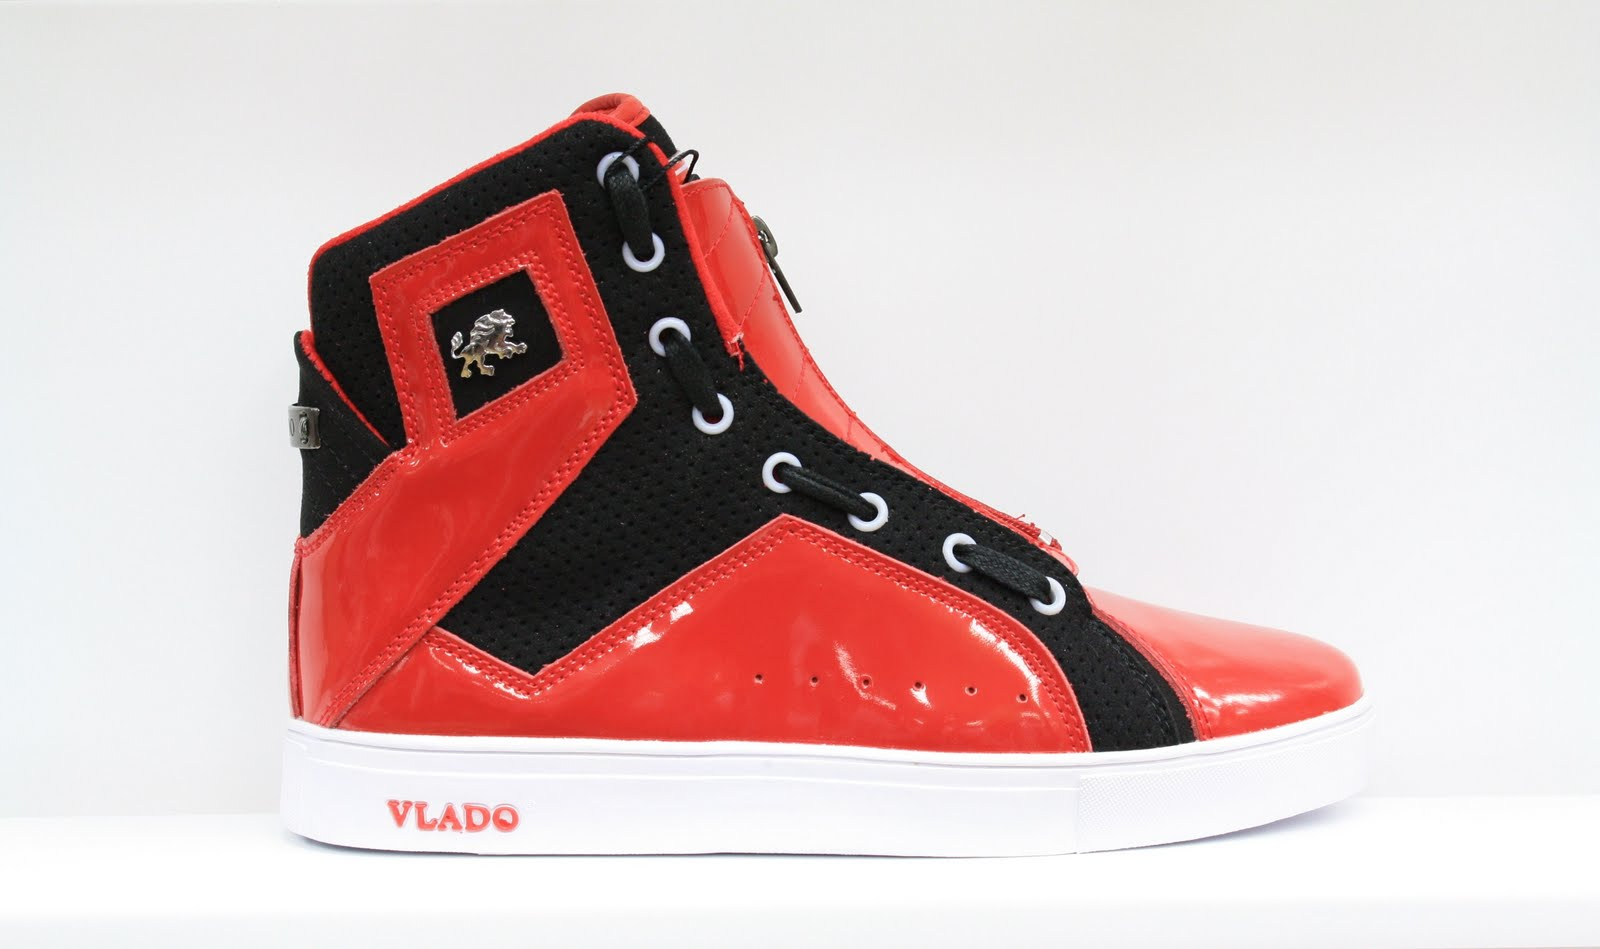 Dr jays stores new vlado sneakers available in drjays stores for 111 8th ave 7th floor new york ny 10011